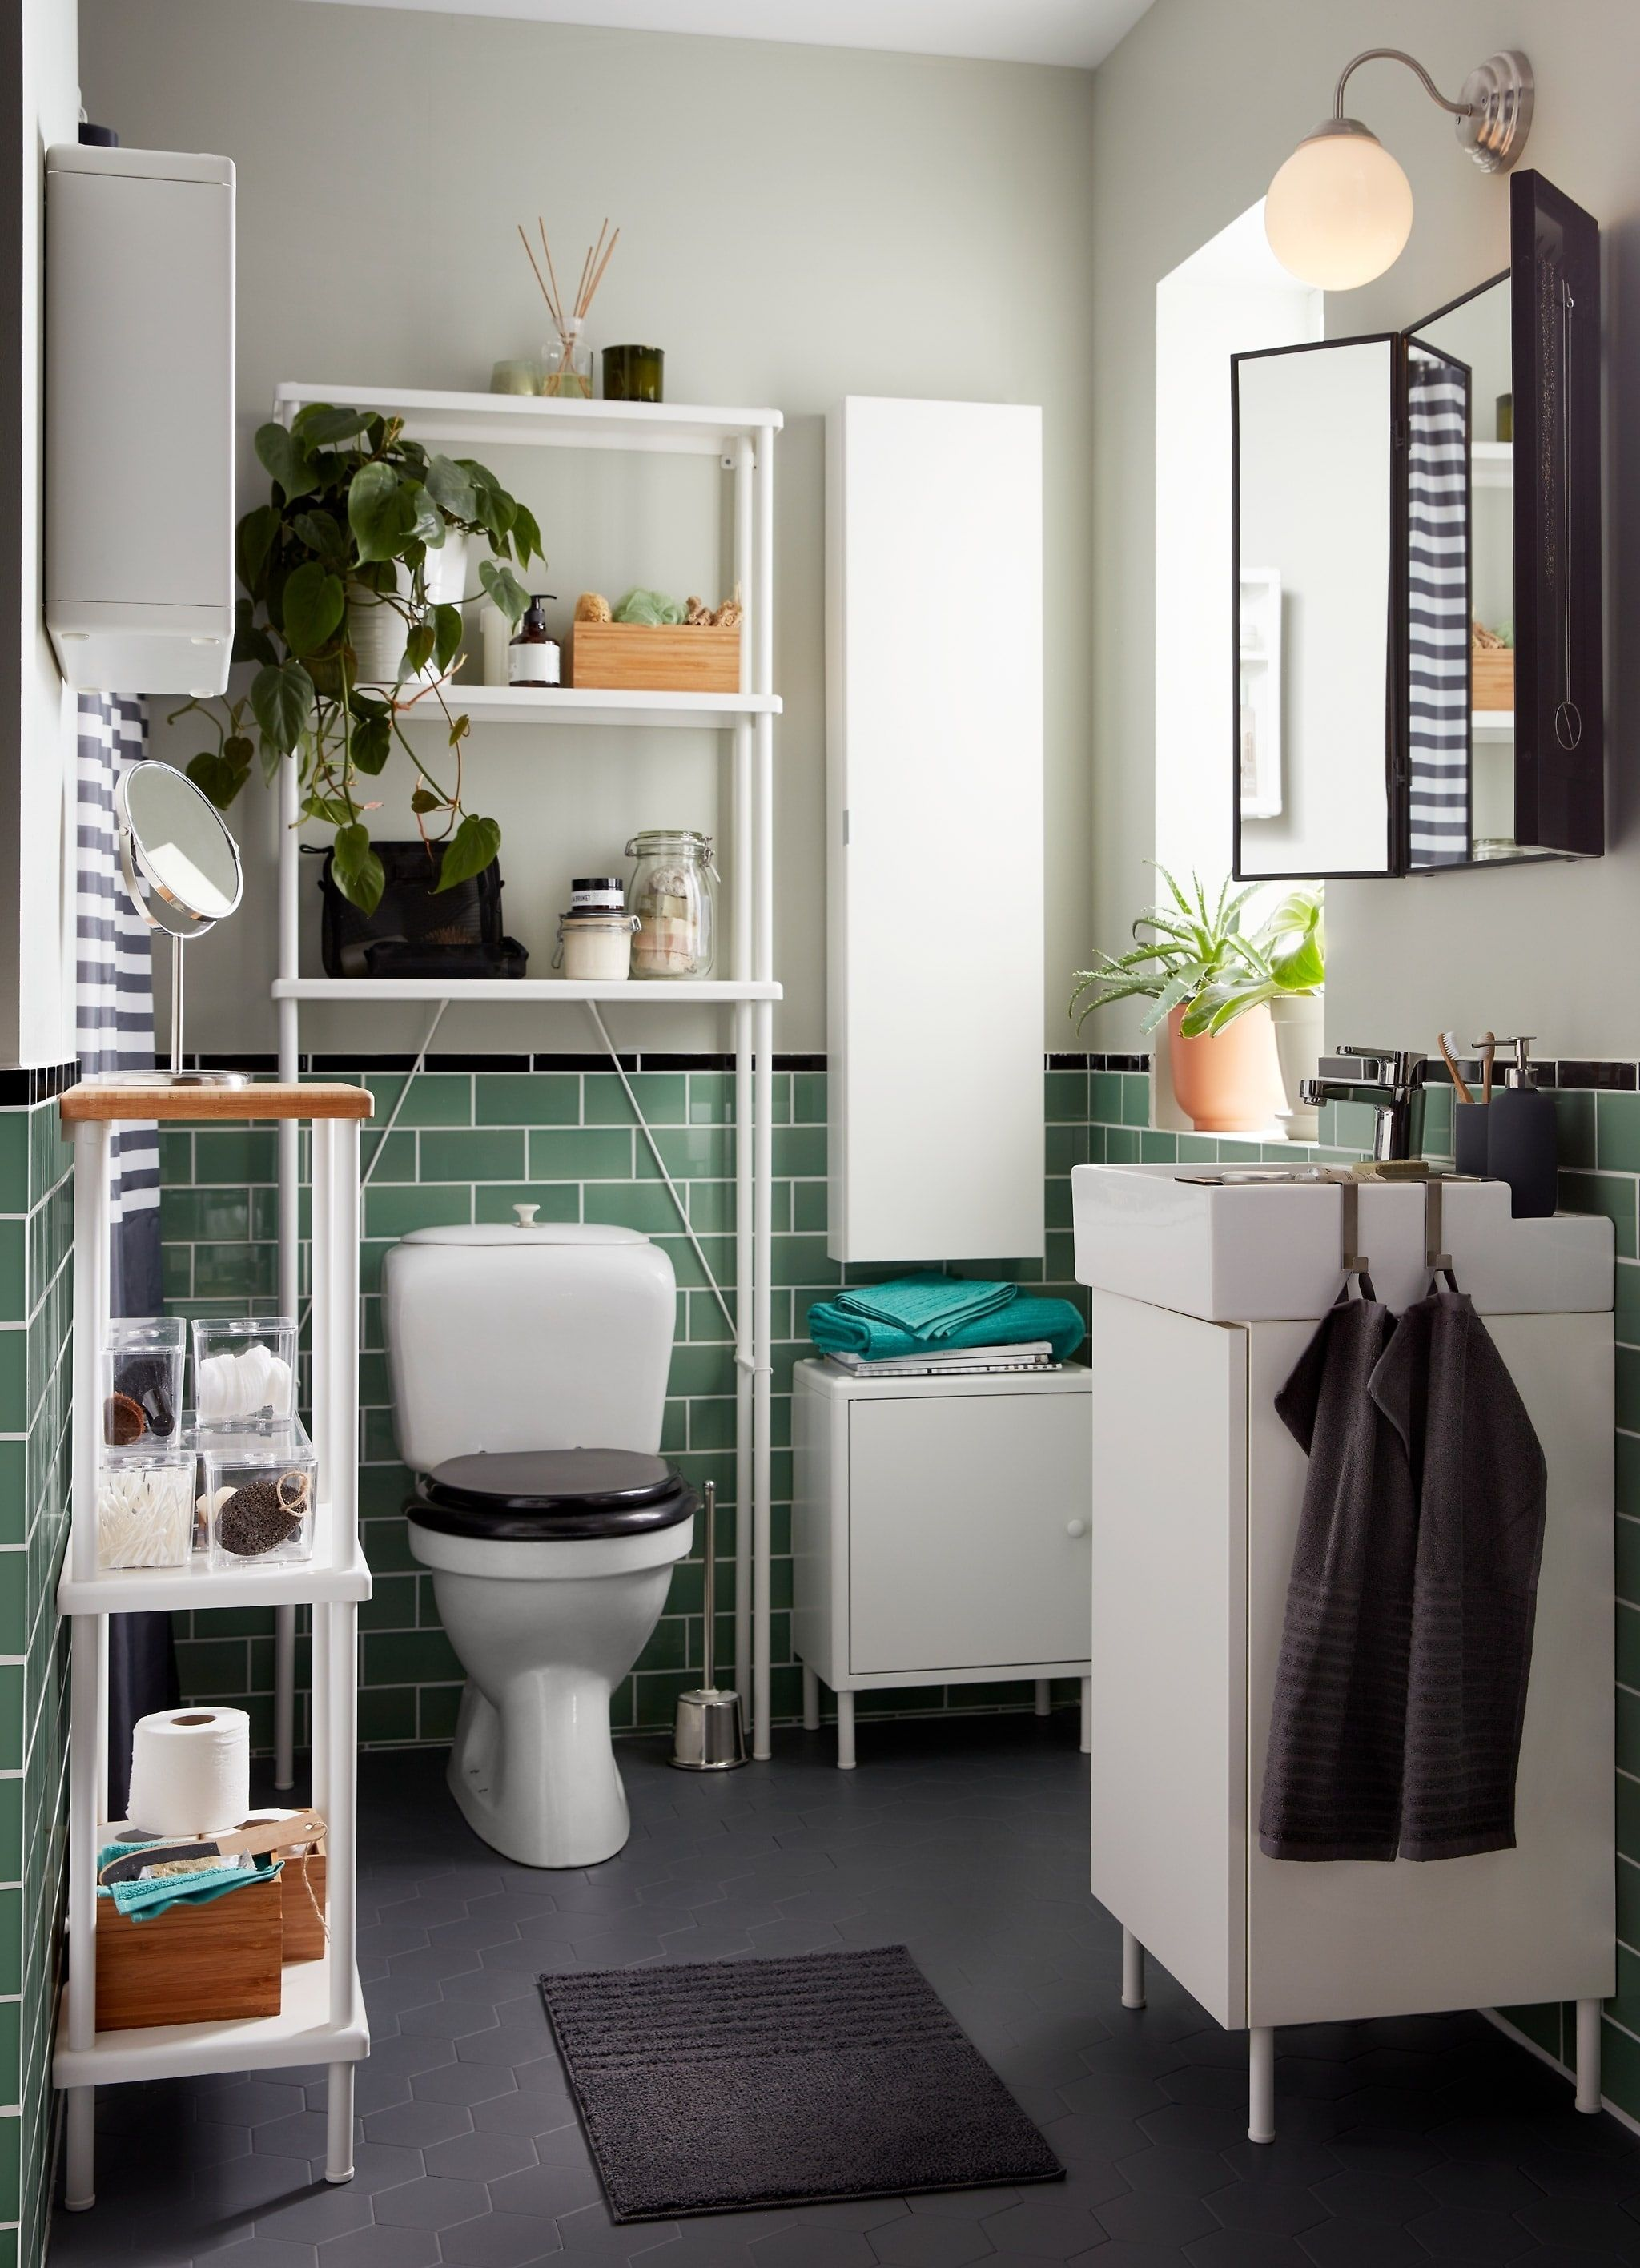 Luxury Inspirational Ikea Small Bathroom Ideas Ij05k1 Https Ijcar 2016 Info Inspirational Ikea Small Bathroom Makeover Bathroom Wall Cabinets Cheap Bathrooms